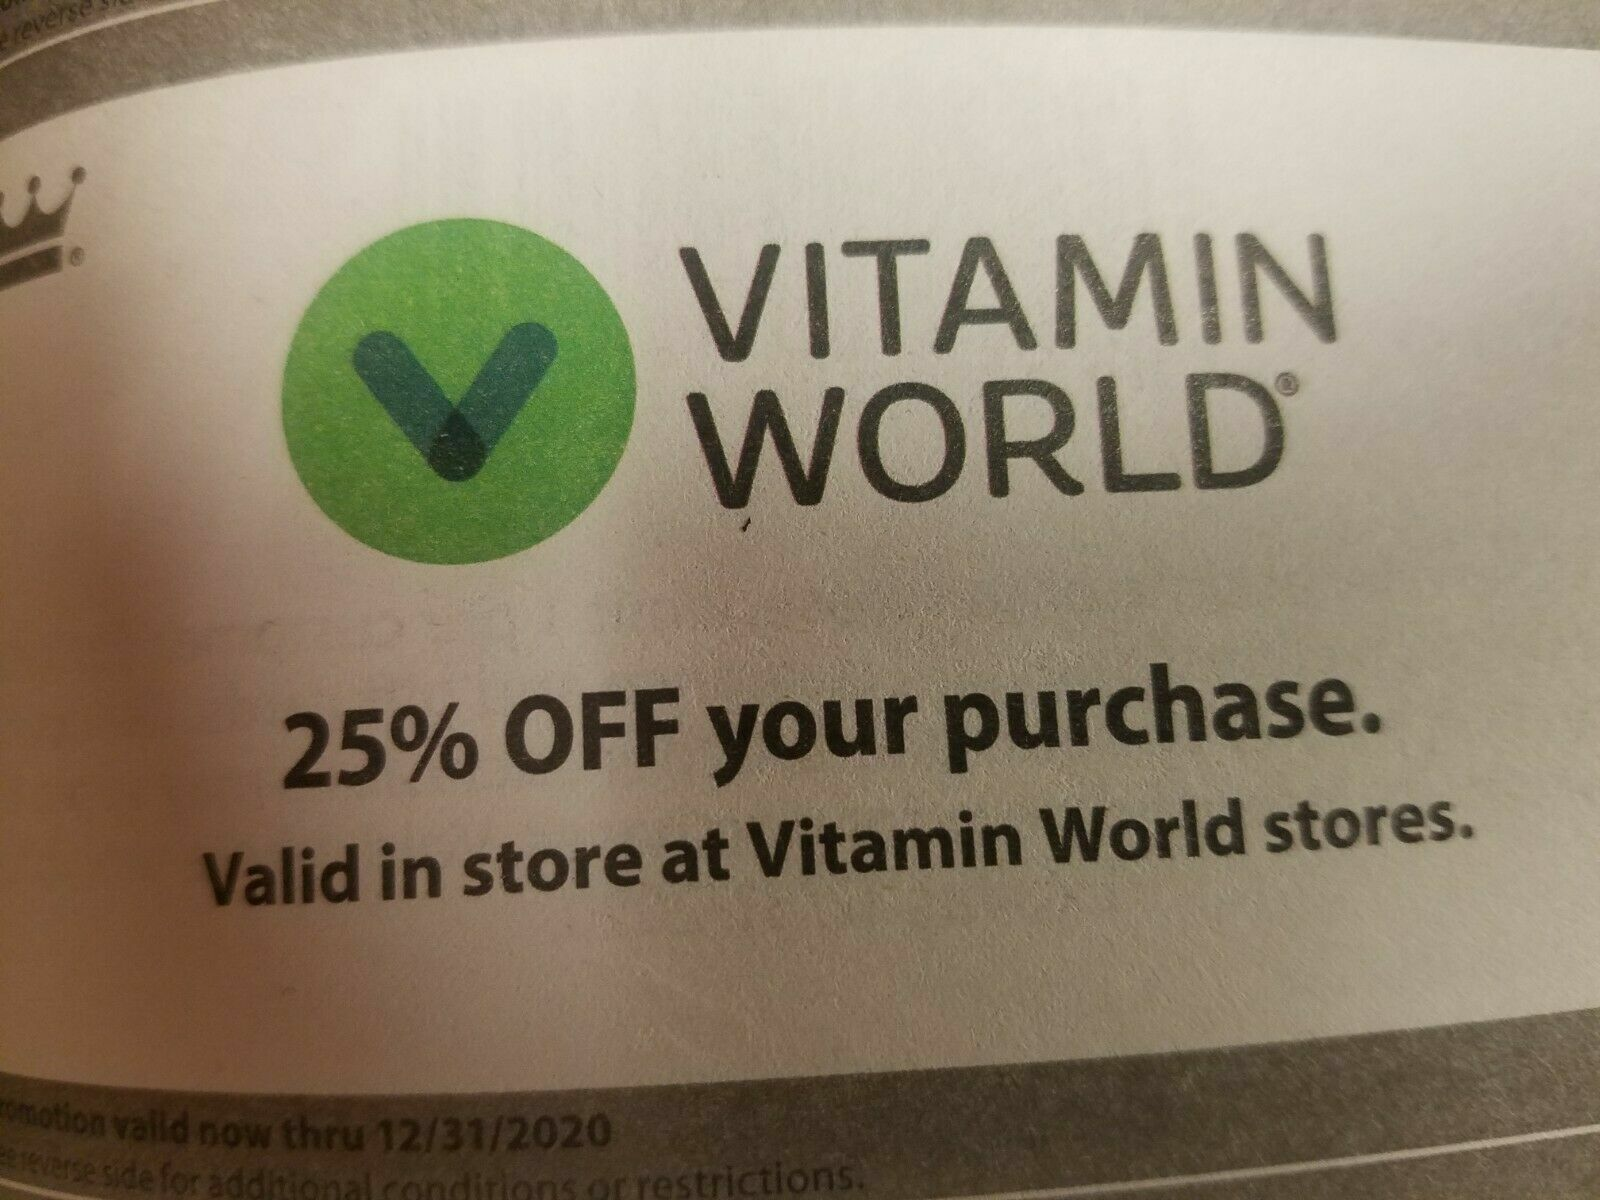 Vitamin World Coupon - 25 Off Purchase, Expires 12/31/2020 - $2.99